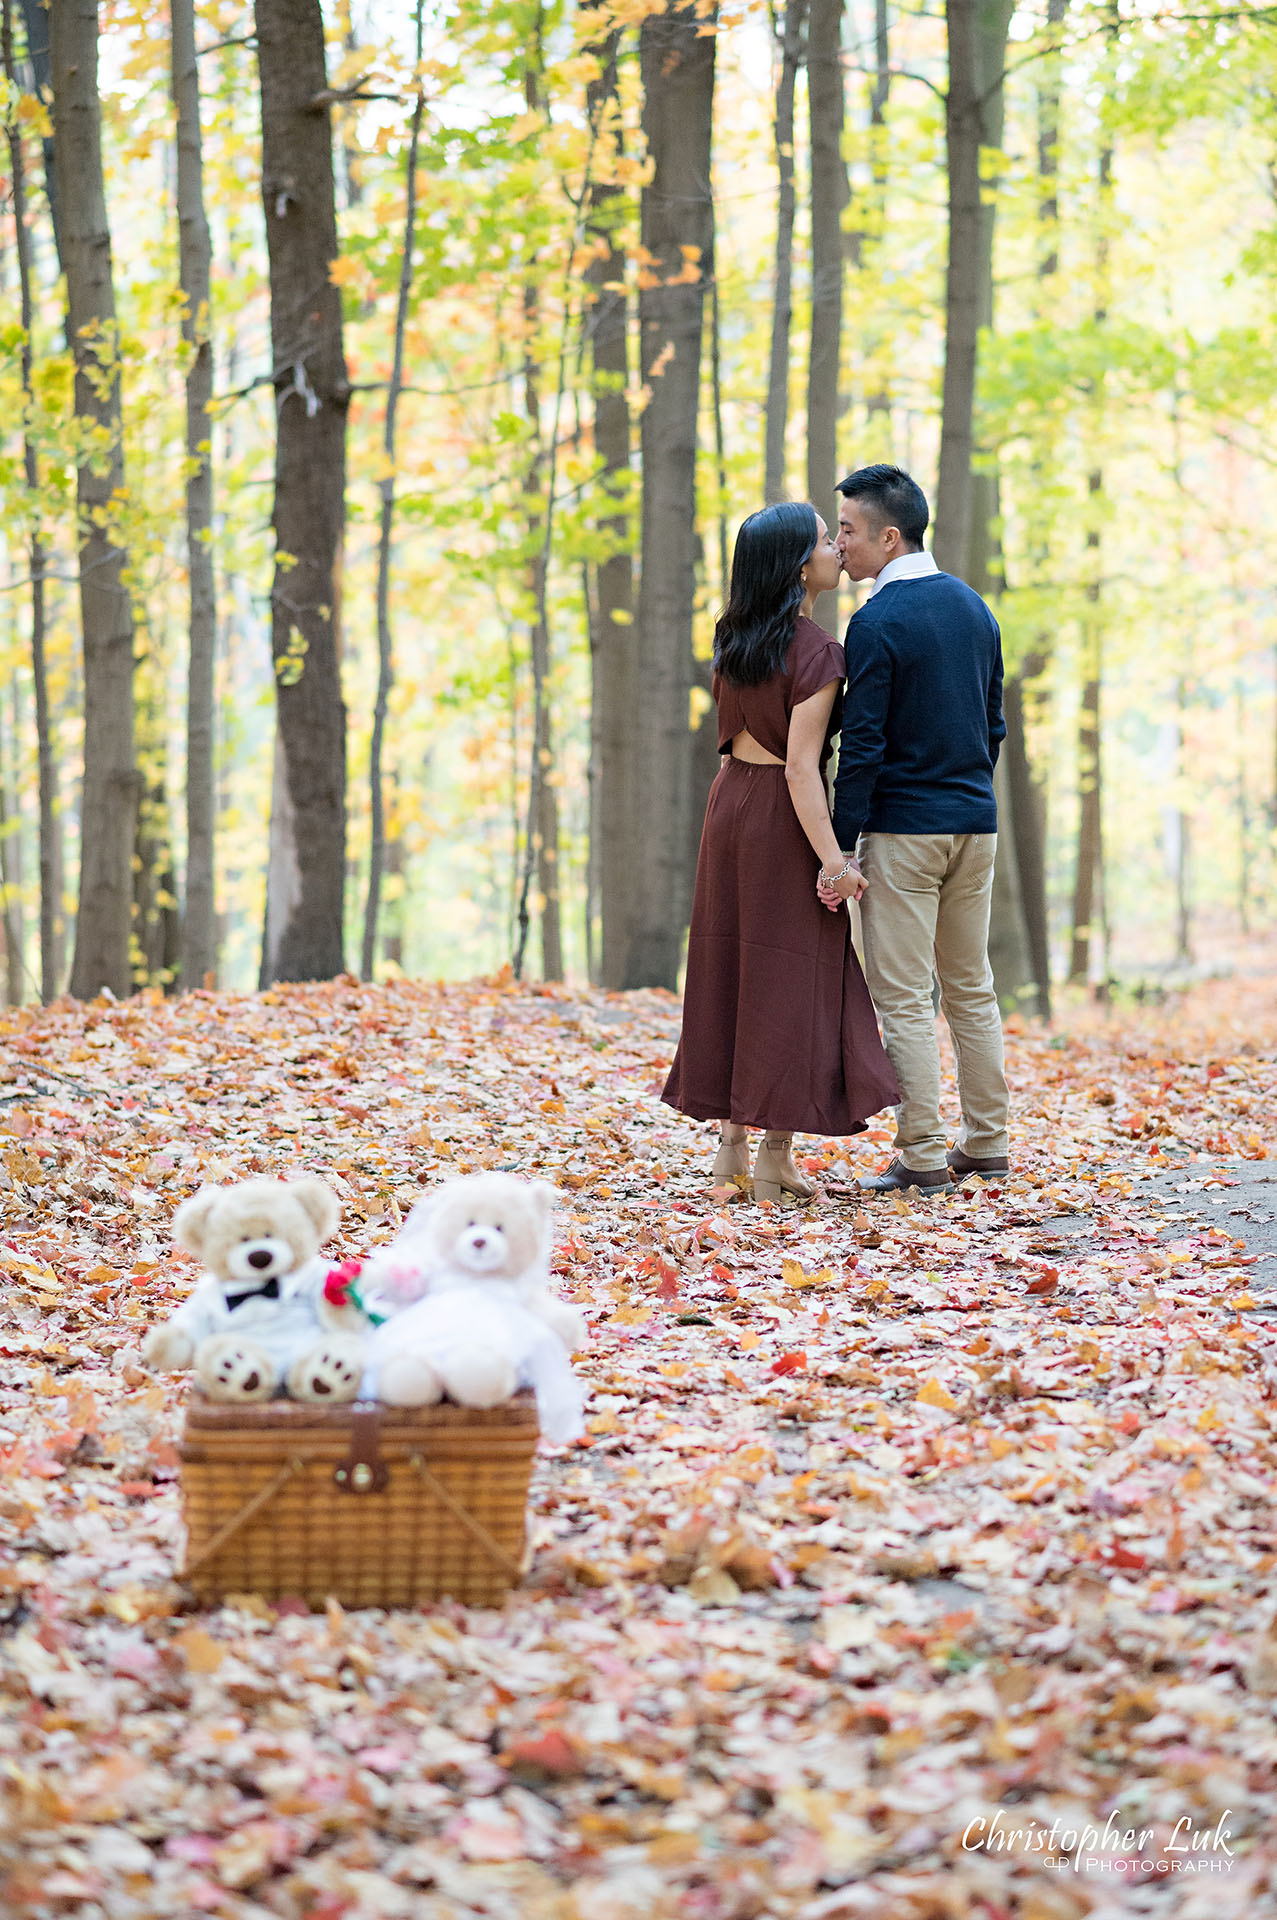 Christopher Luk Toronto Wedding Engagement Session Photographer Autumn Fall Leaves Natural Candid Photojournalistic Bride Groom Hiking Trail Stuffed Animal WongFu Productions Spencer Bear Picnic Basket Trees Kiss